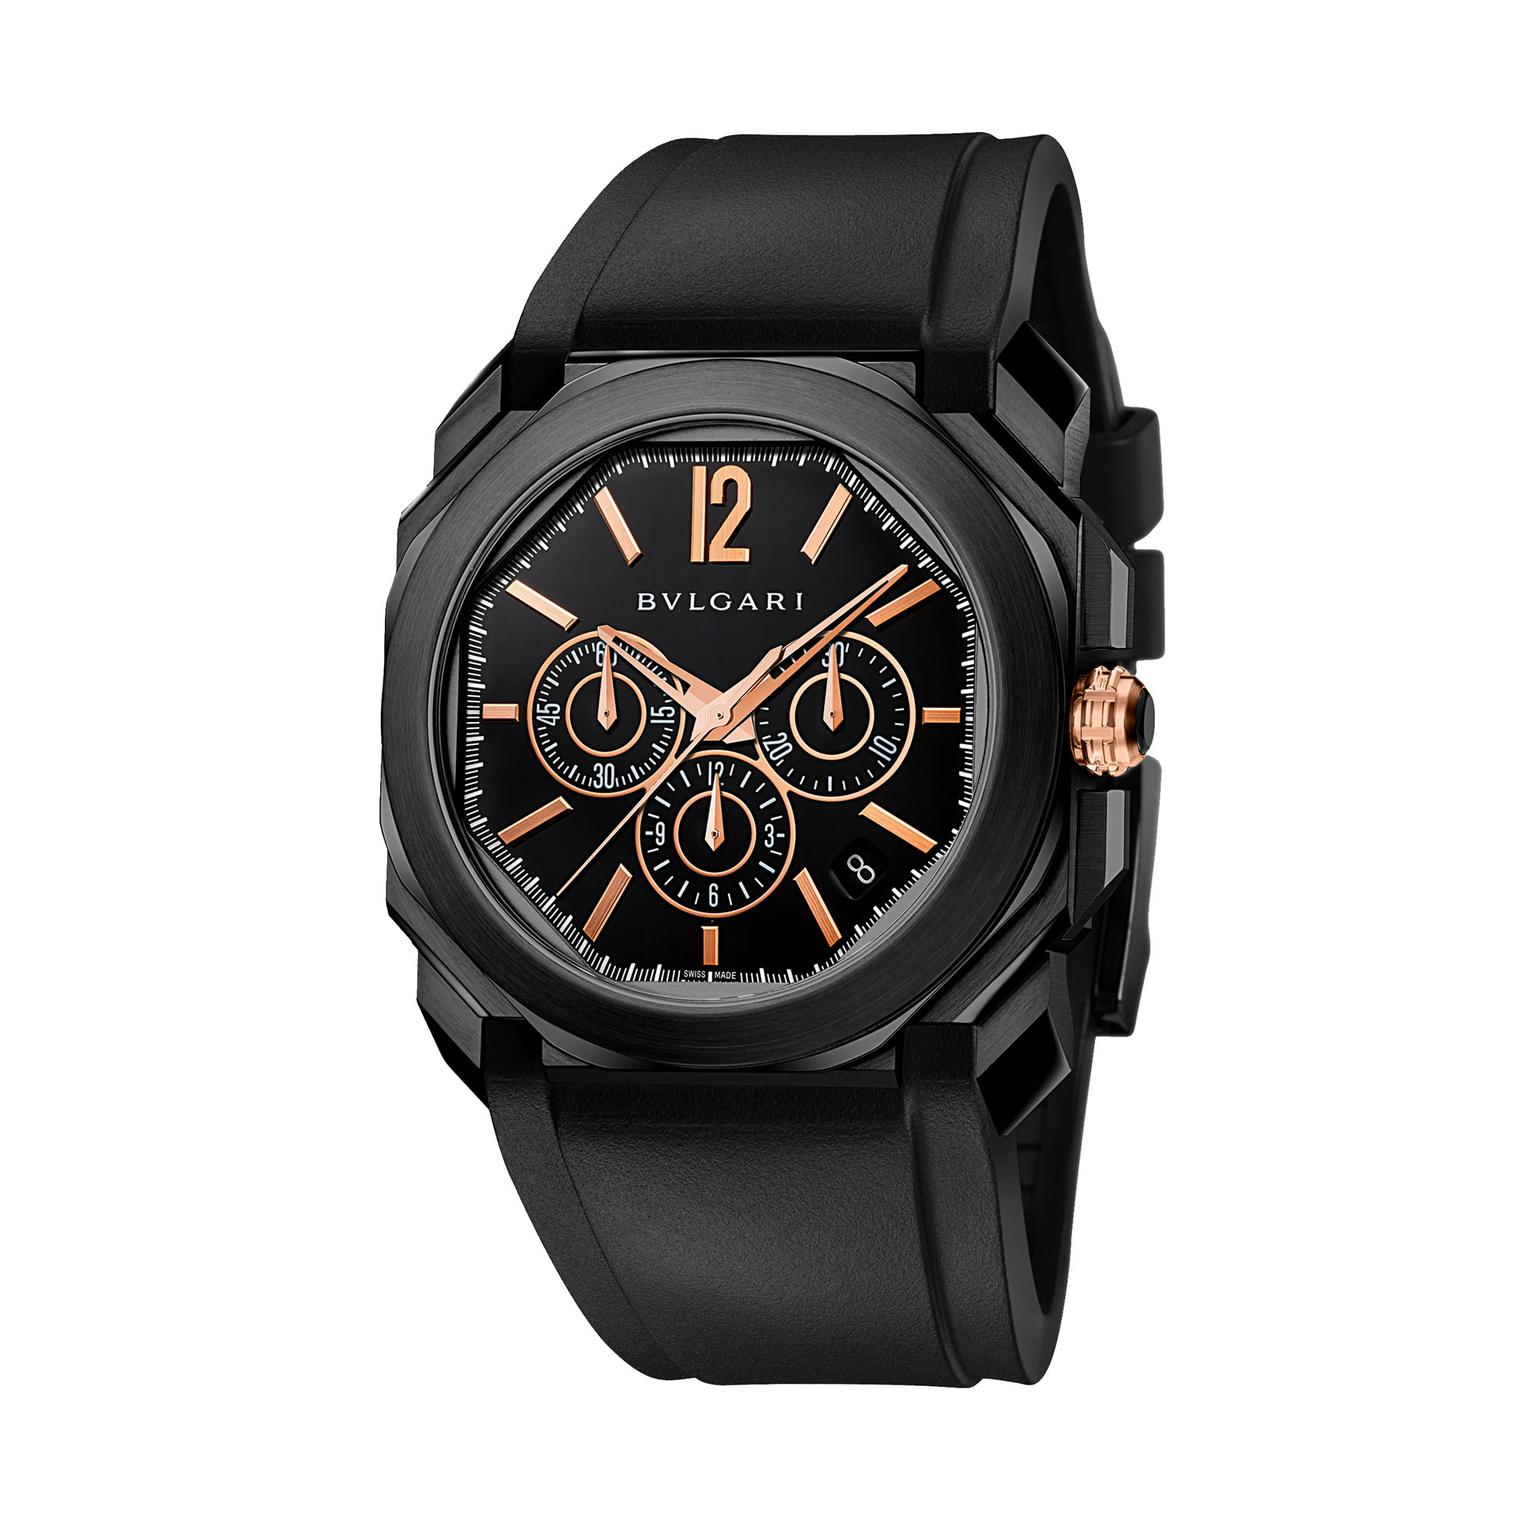 Bulgari Octo Velocissimo Chronograph watch